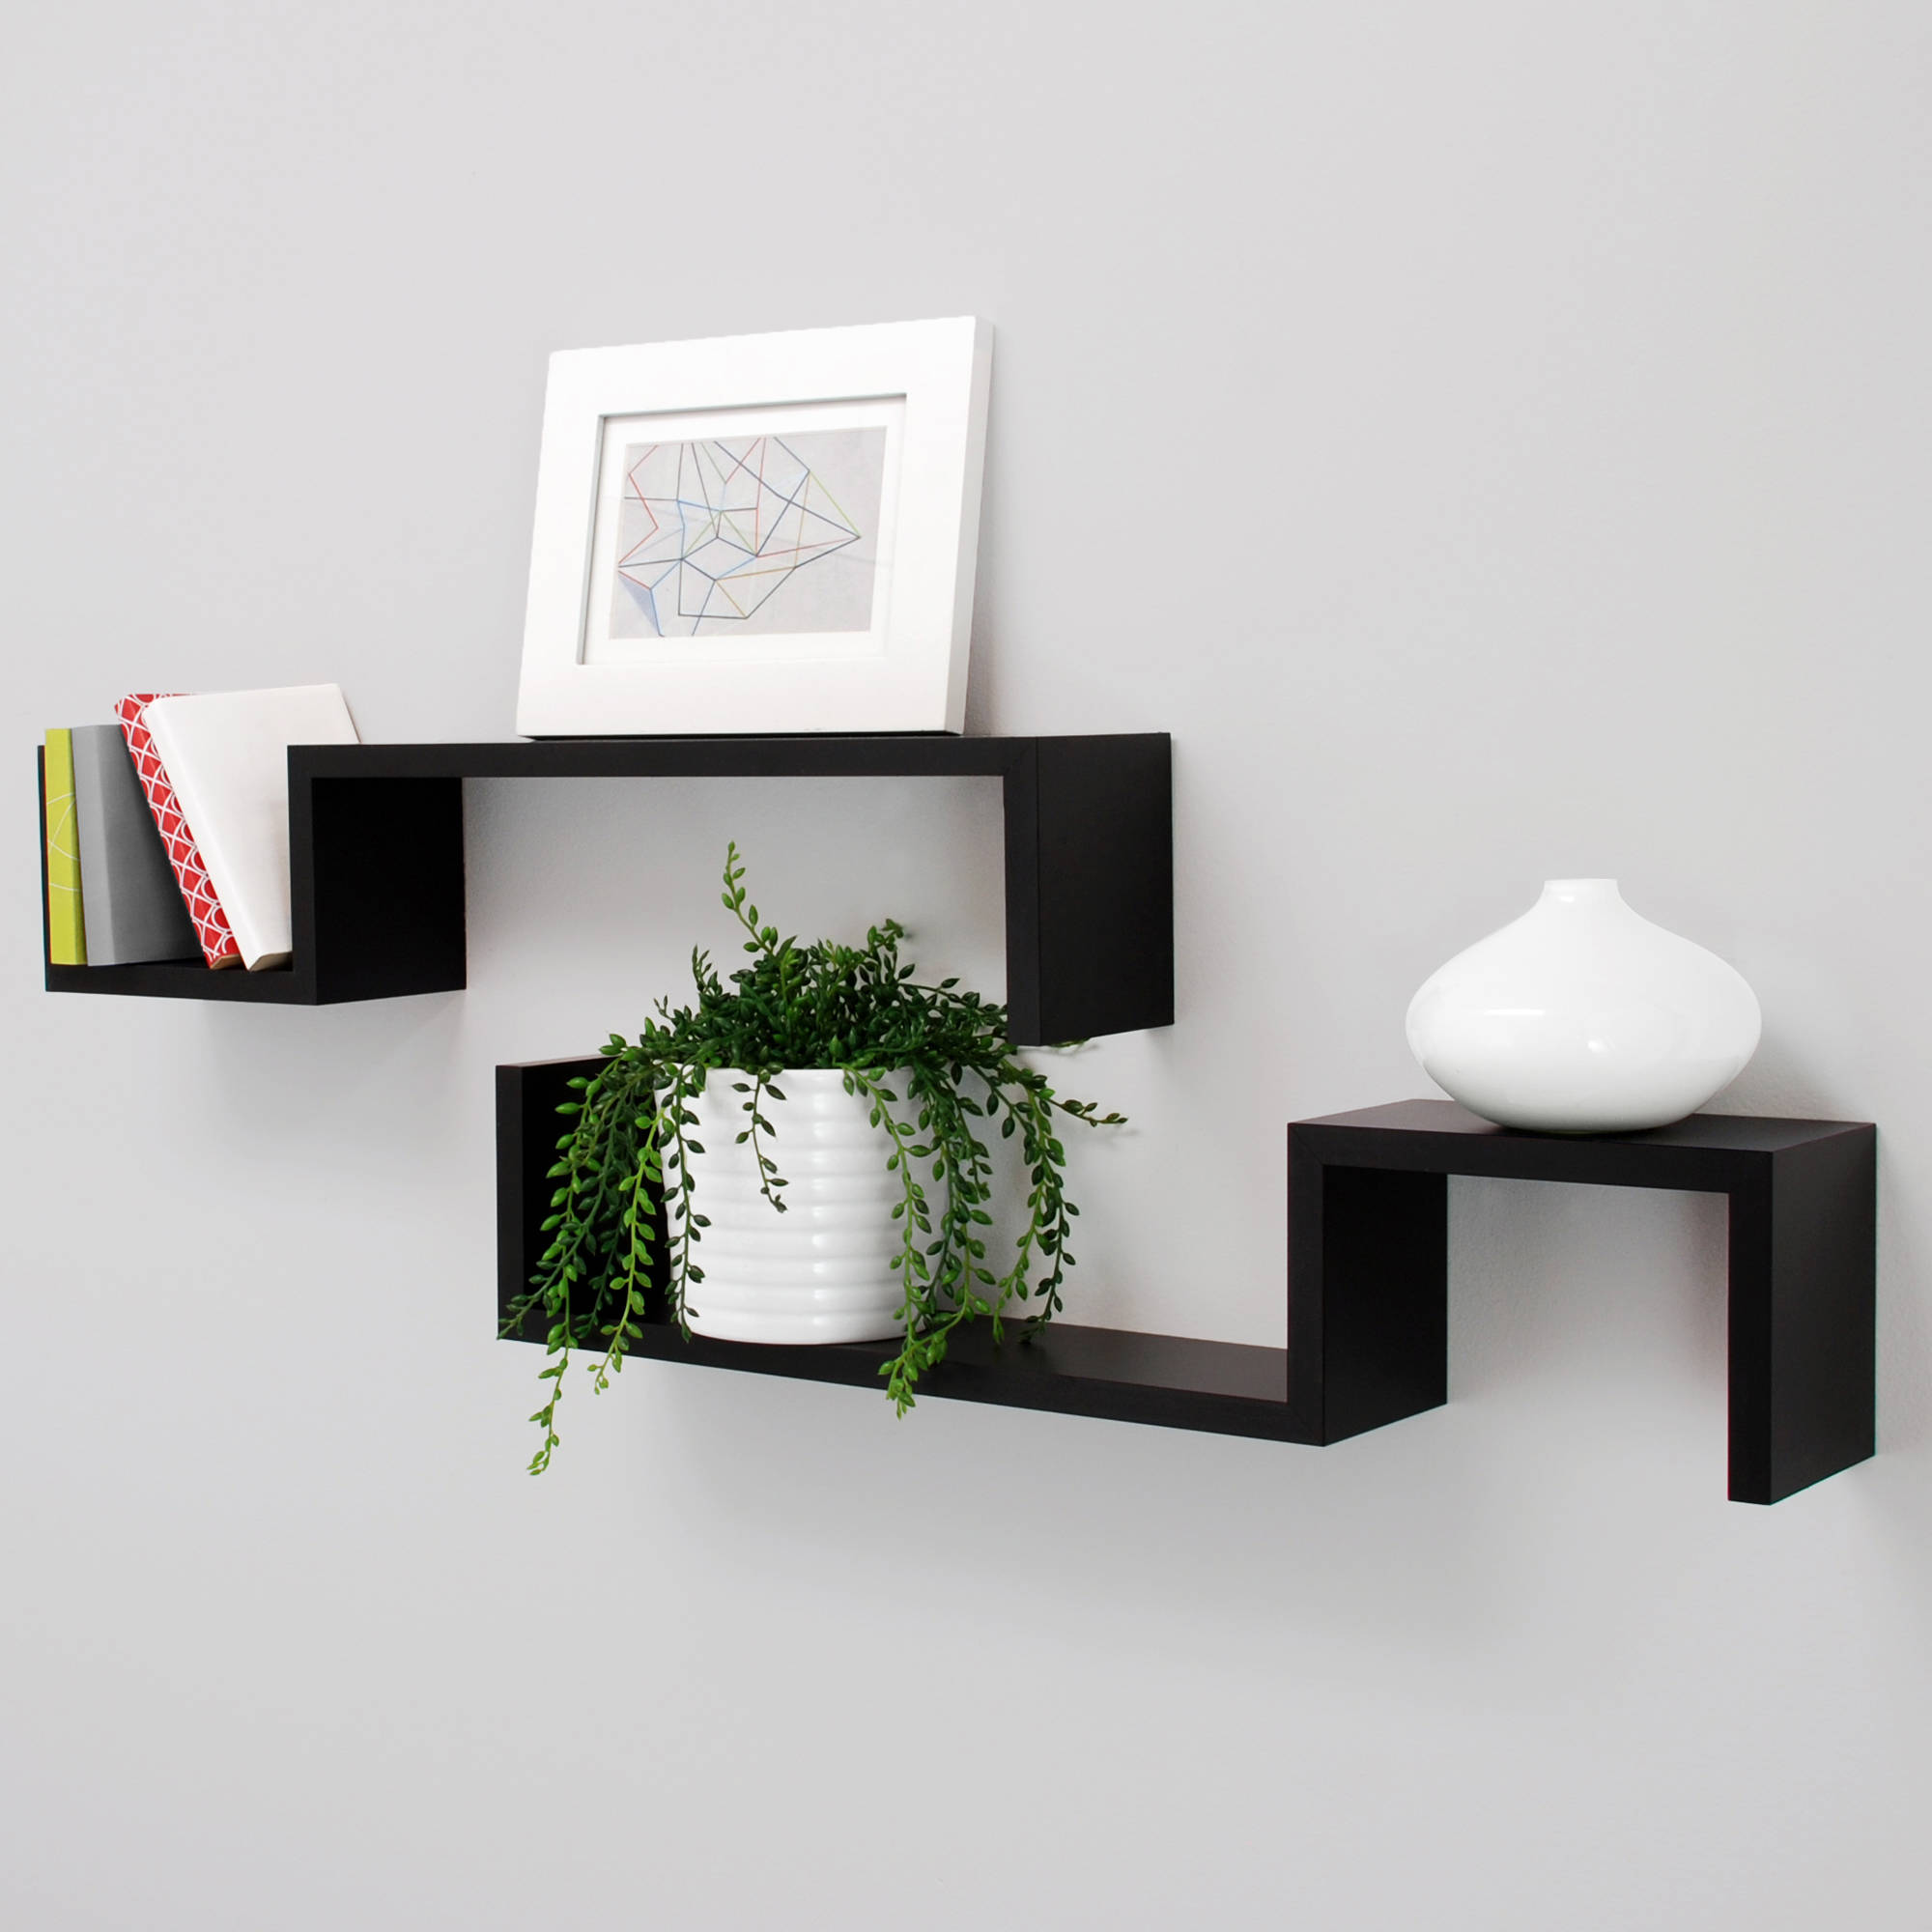 Wall Shelf for Aesthetic Appeal and Necessities